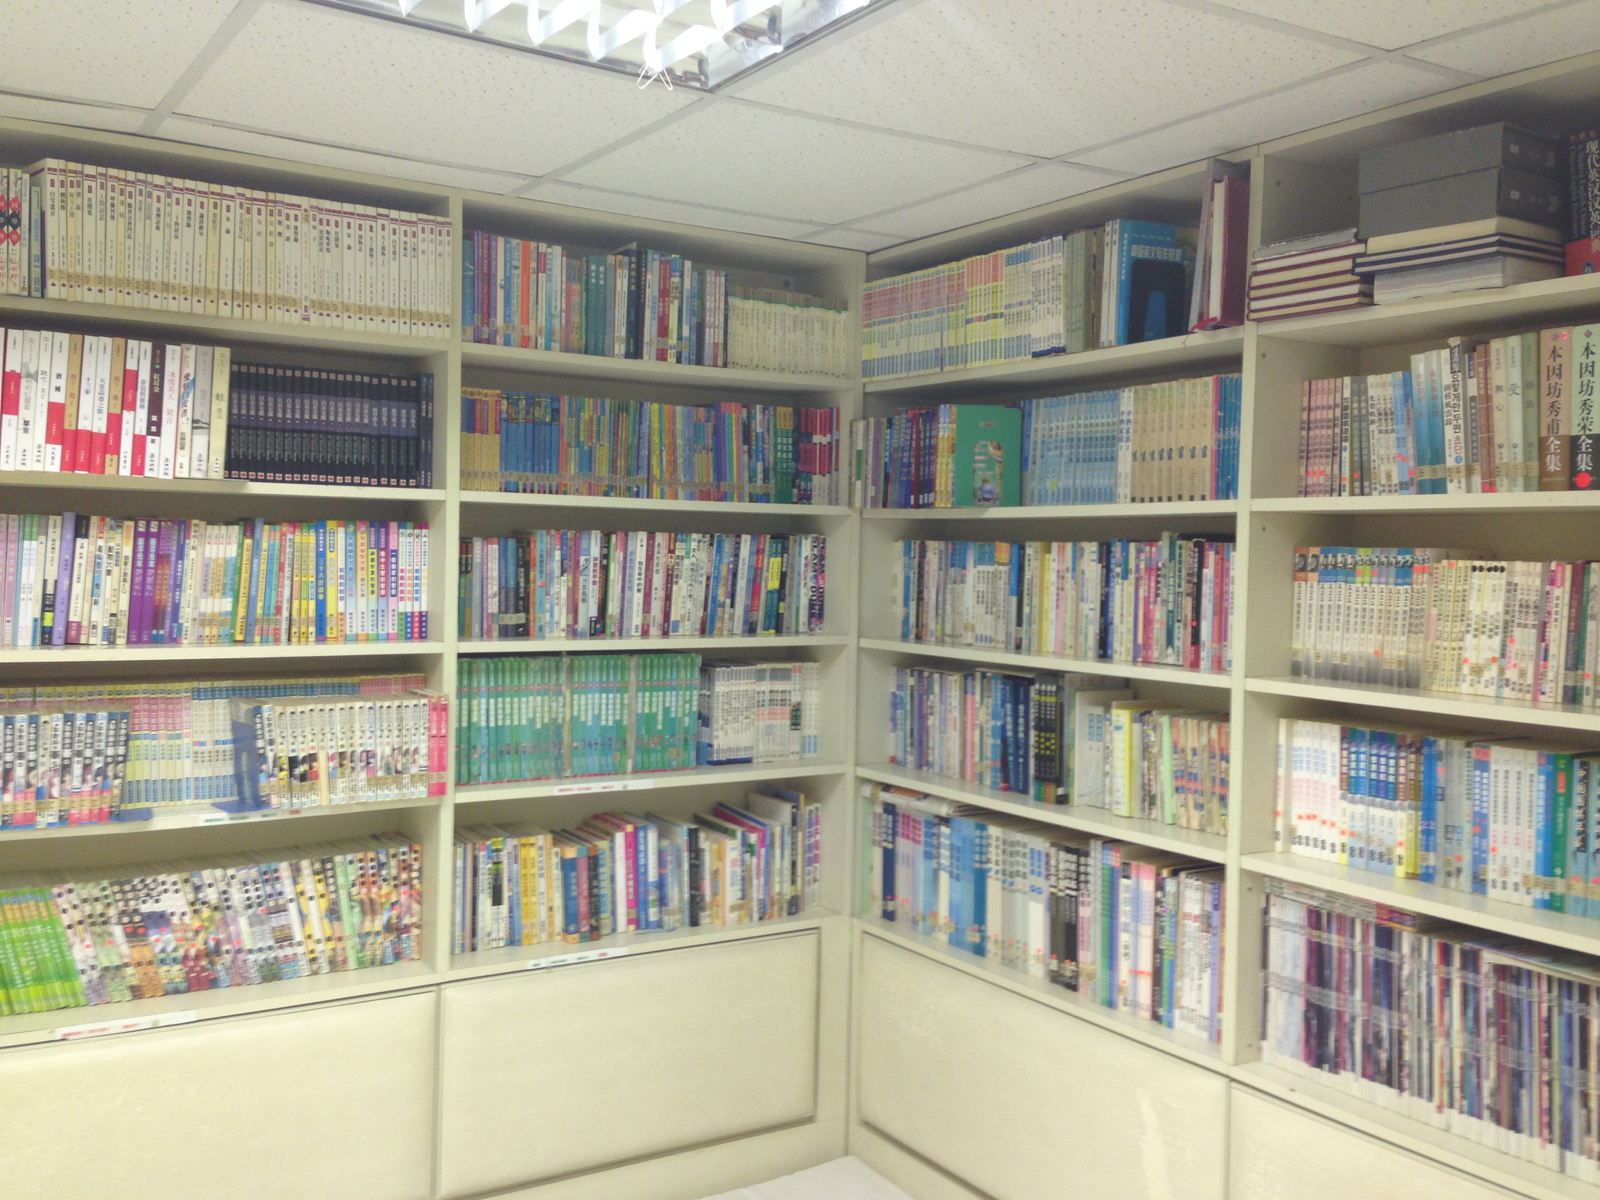 Isn't this massive? All Chinese books though! If only we had this many English go books....